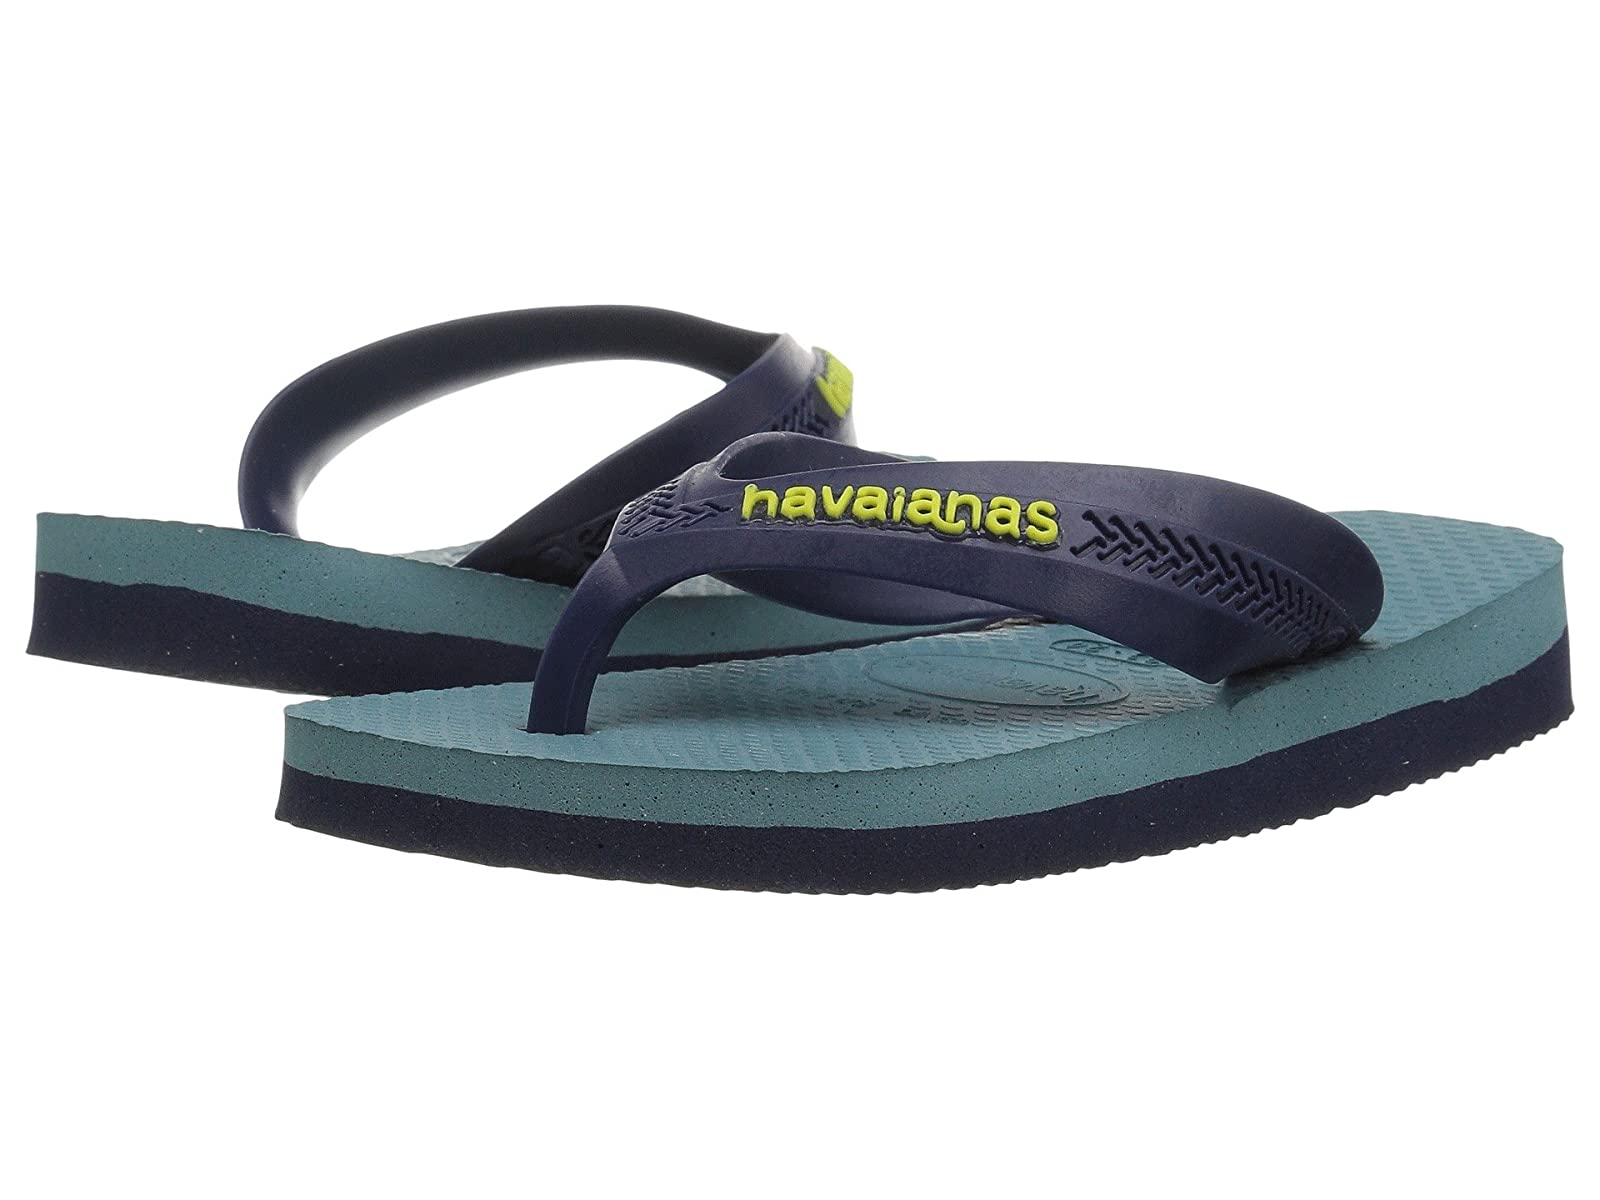 Havaianas Kids Max (Toddler/Little Kid/Big Kid)Atmospheric grades have affordable shoes